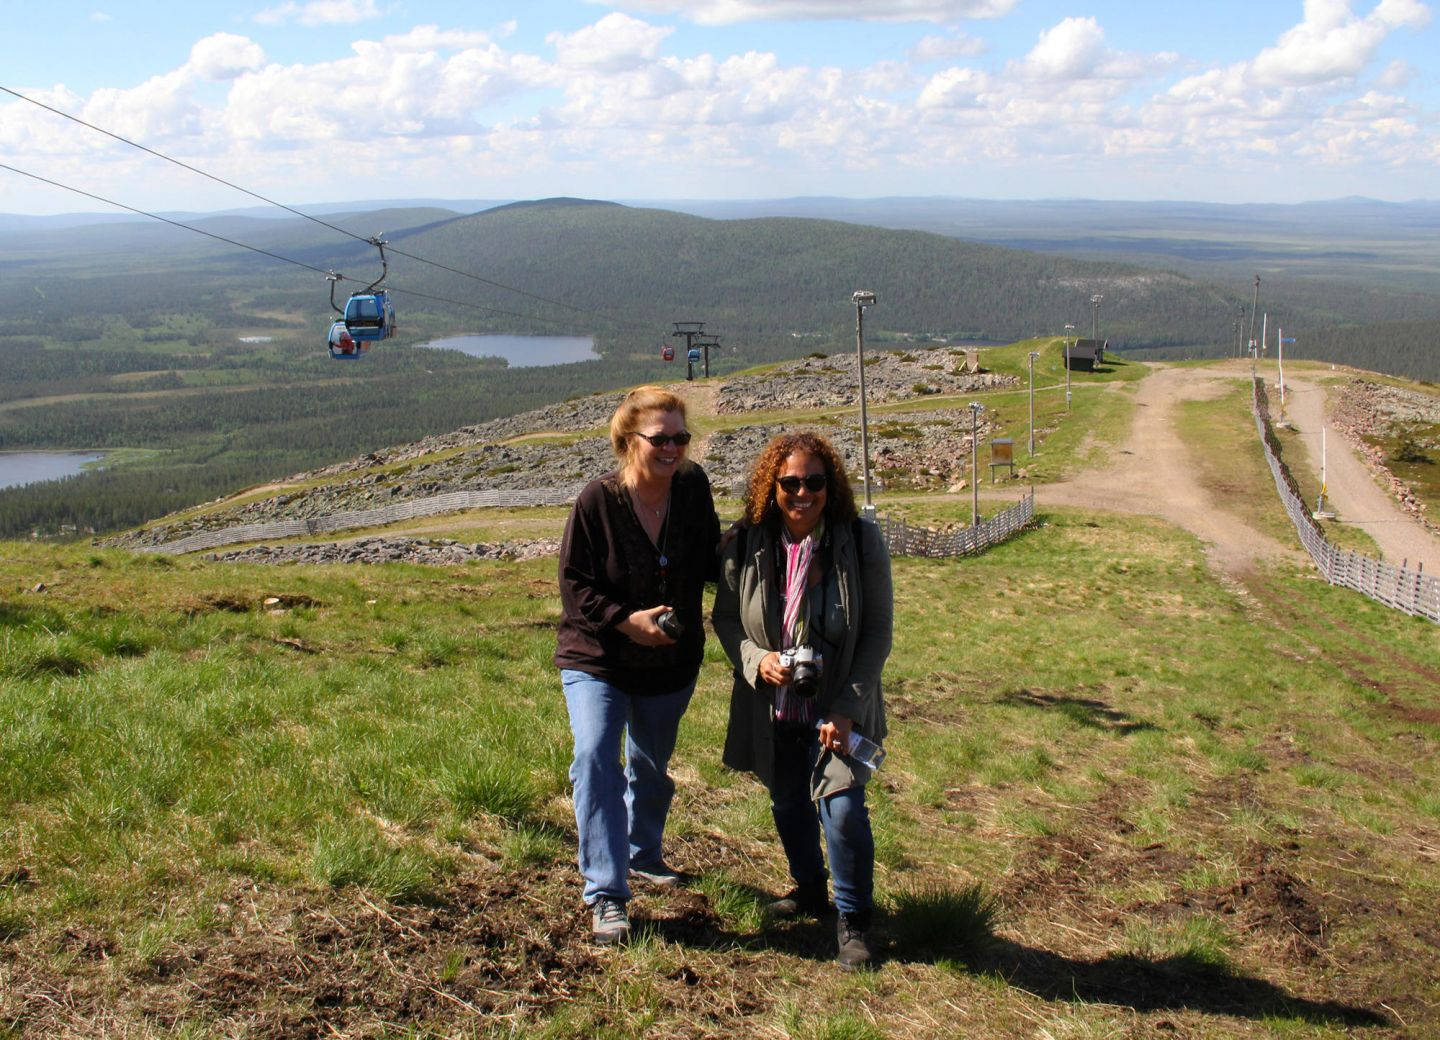 Location scouts Lori Balton and Alison Taylor on Fam trip to Finnish Lapland